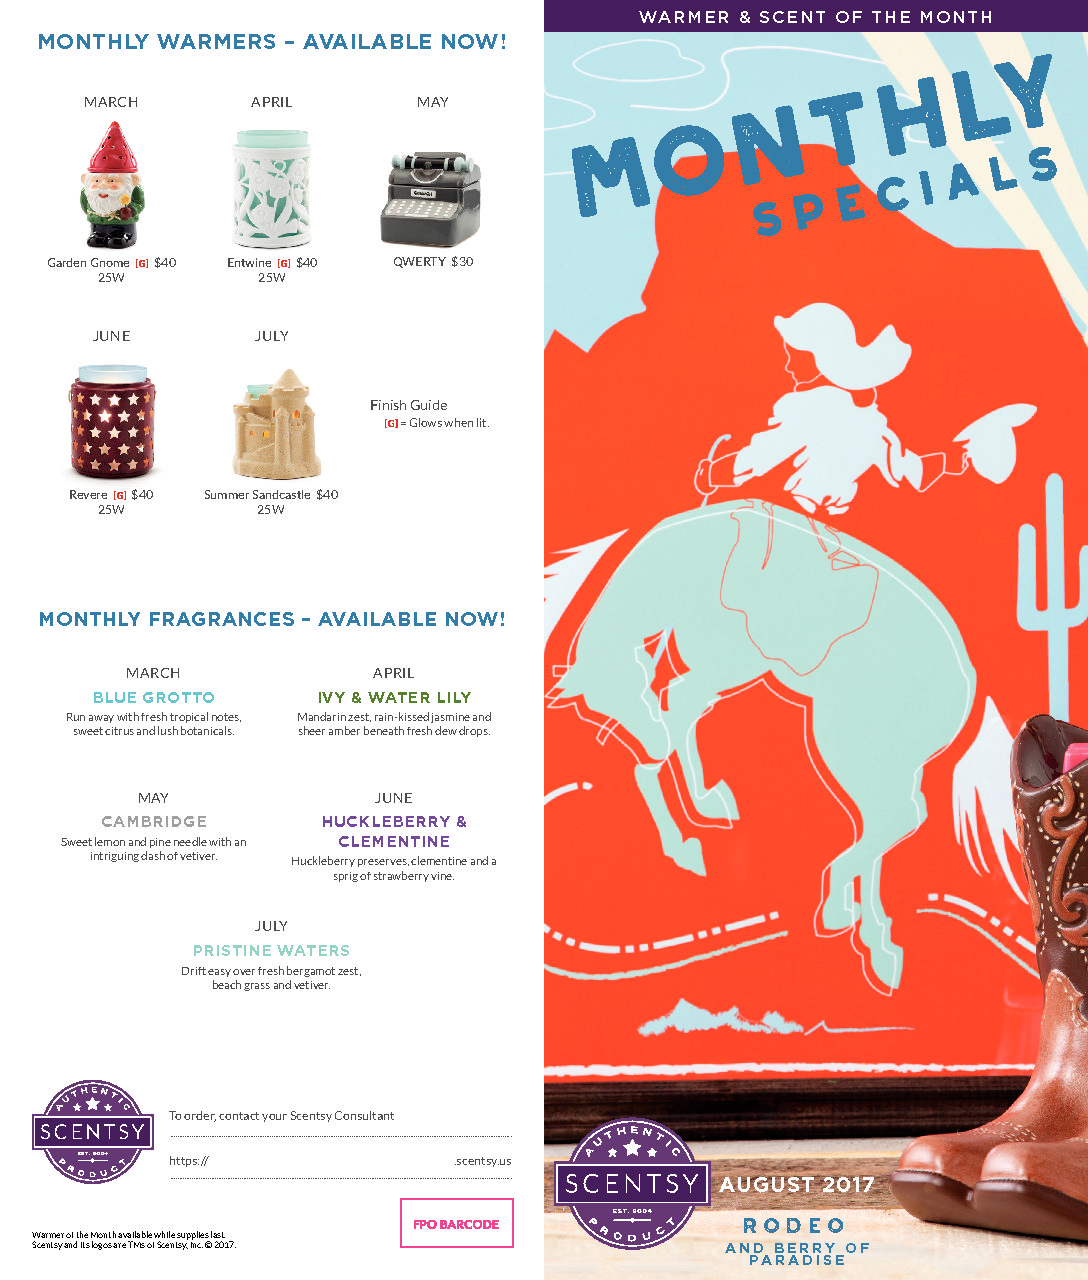 SS17_R1_US-EN_Home_Scent_August_Monthly_Flyer_Final(1)